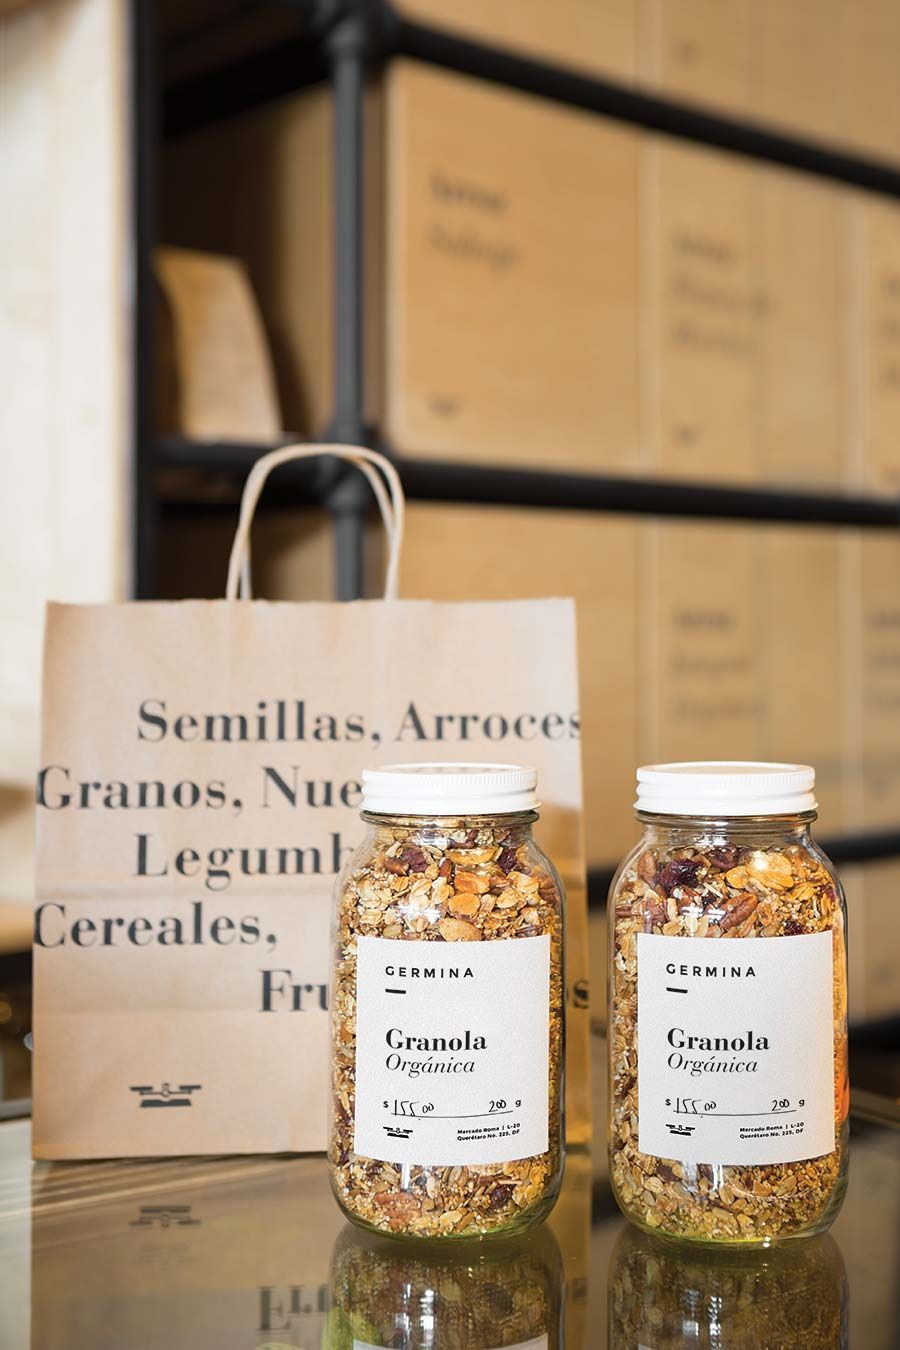 Germina visual identity - designed by Savvy Studio is part of Bakery packaging - Food packaging d